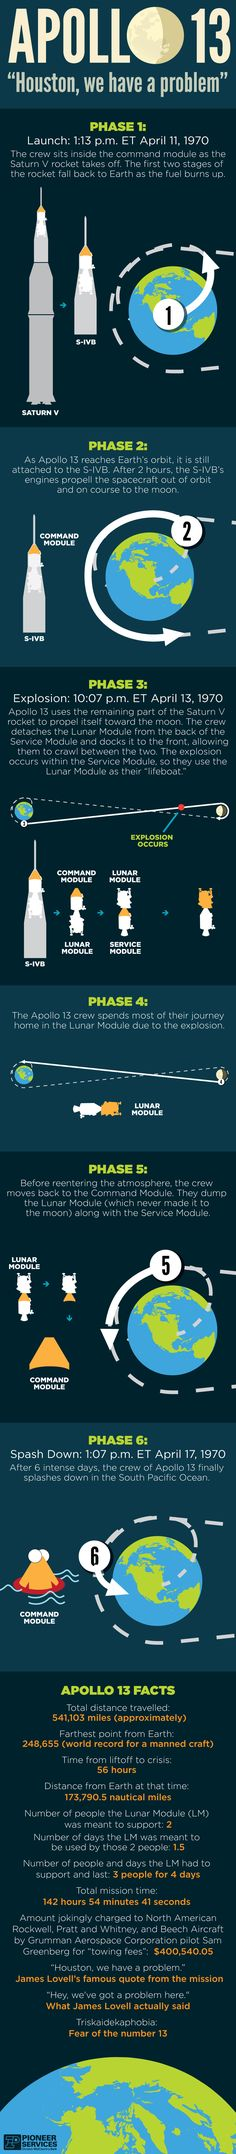 Apollo 13 Infographic